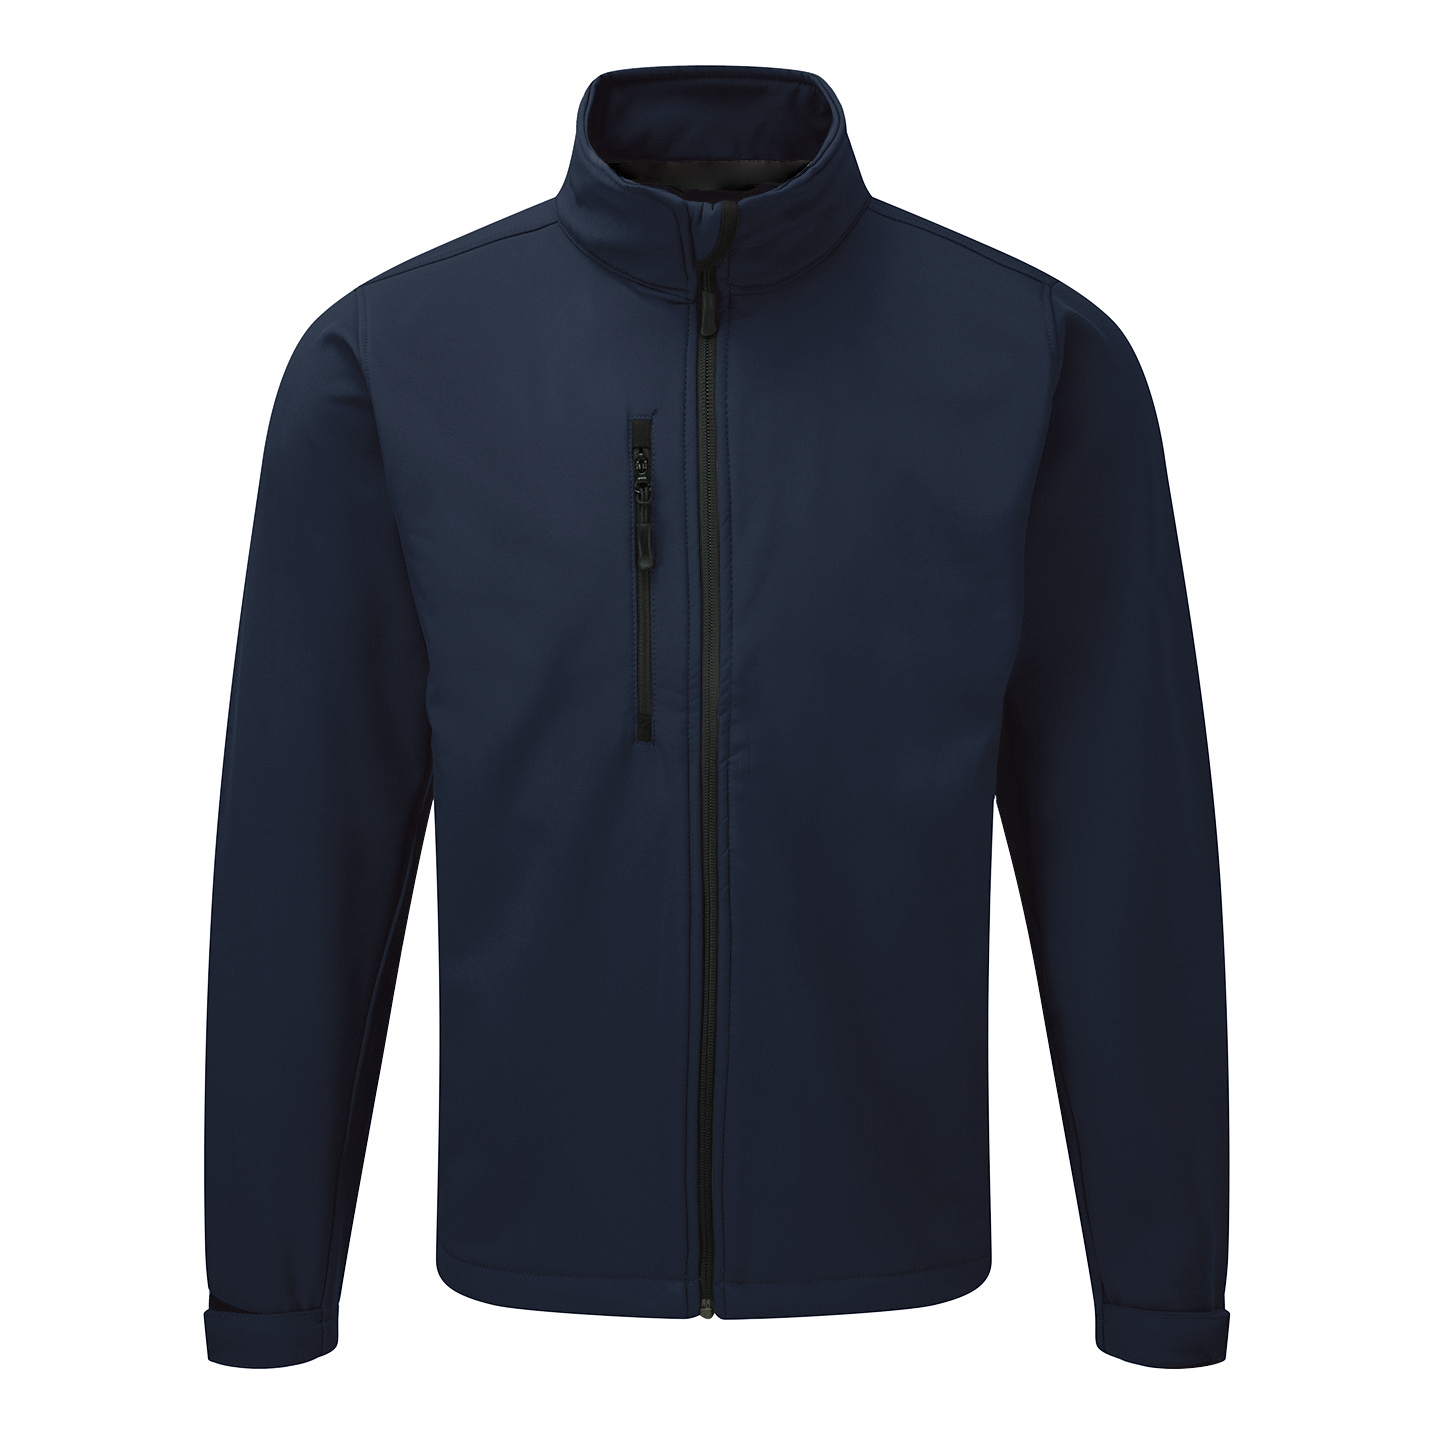 Jacket Soft Shell Water Resistant Breathable 320gsm XL Navy Blue